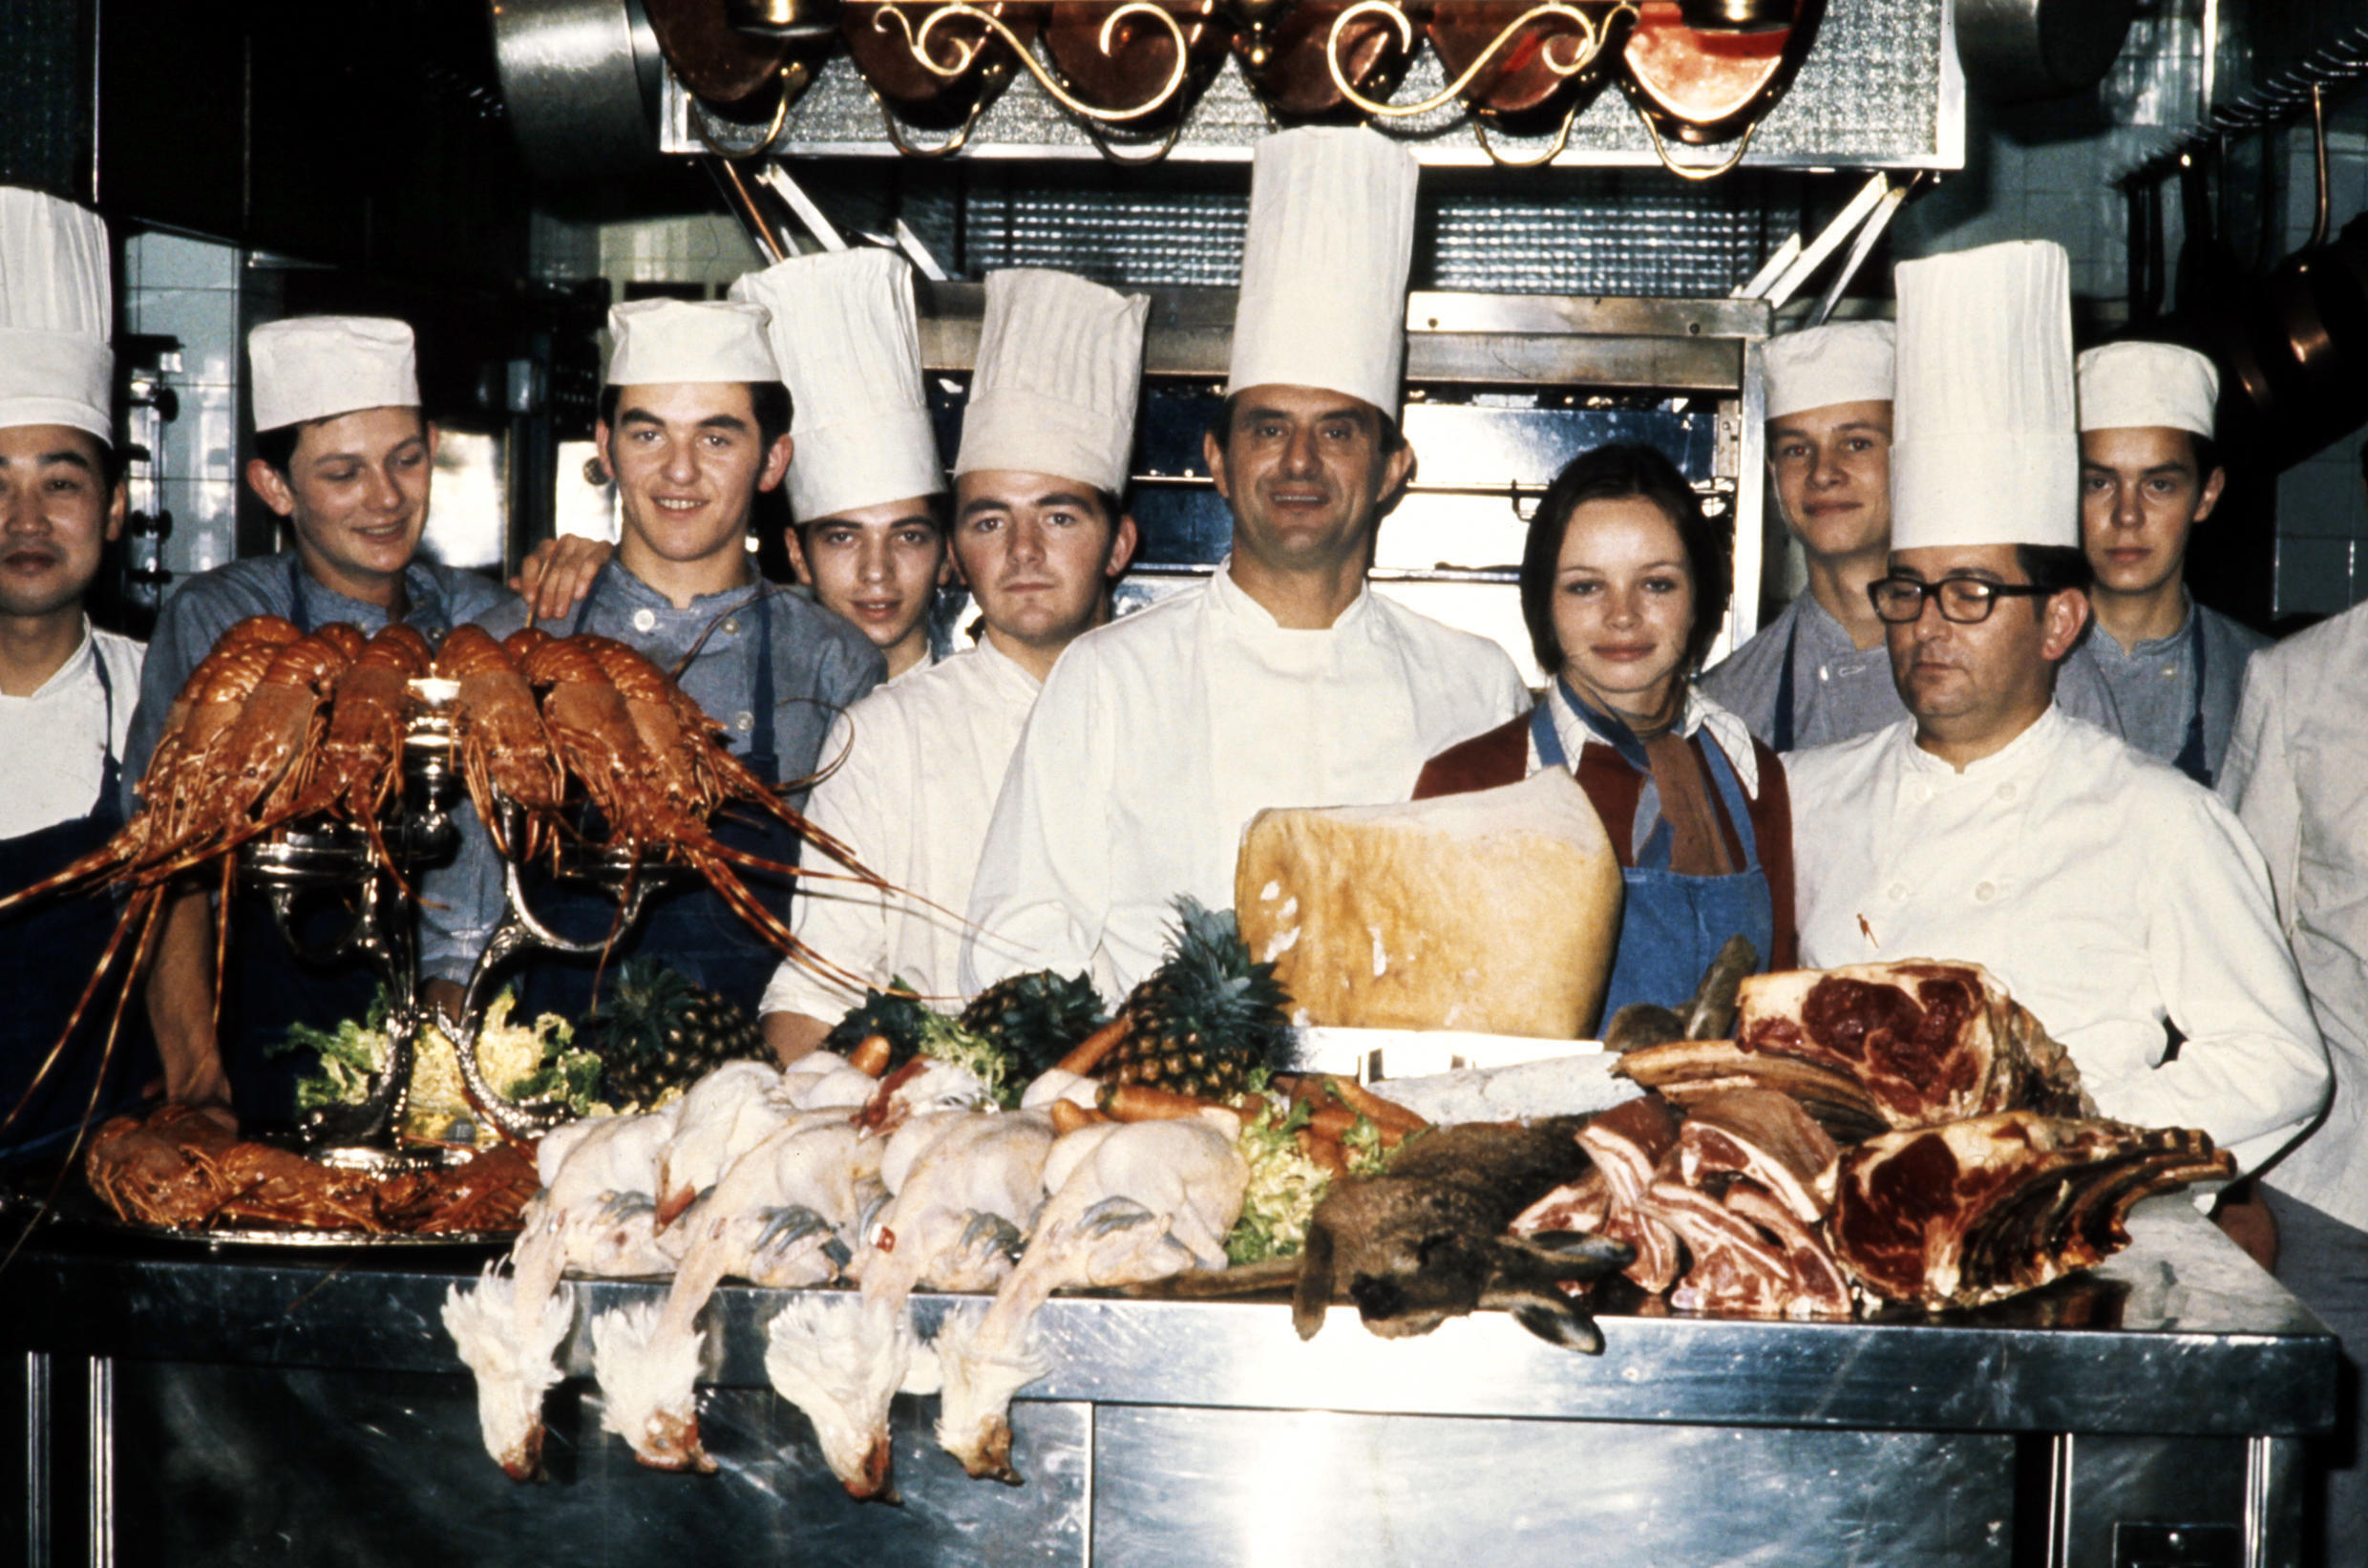 French restaurant Chef Paul Bocuse poses, on November 15, 1973 in his kitchen with his staff prior to prepare meals in Lyon.